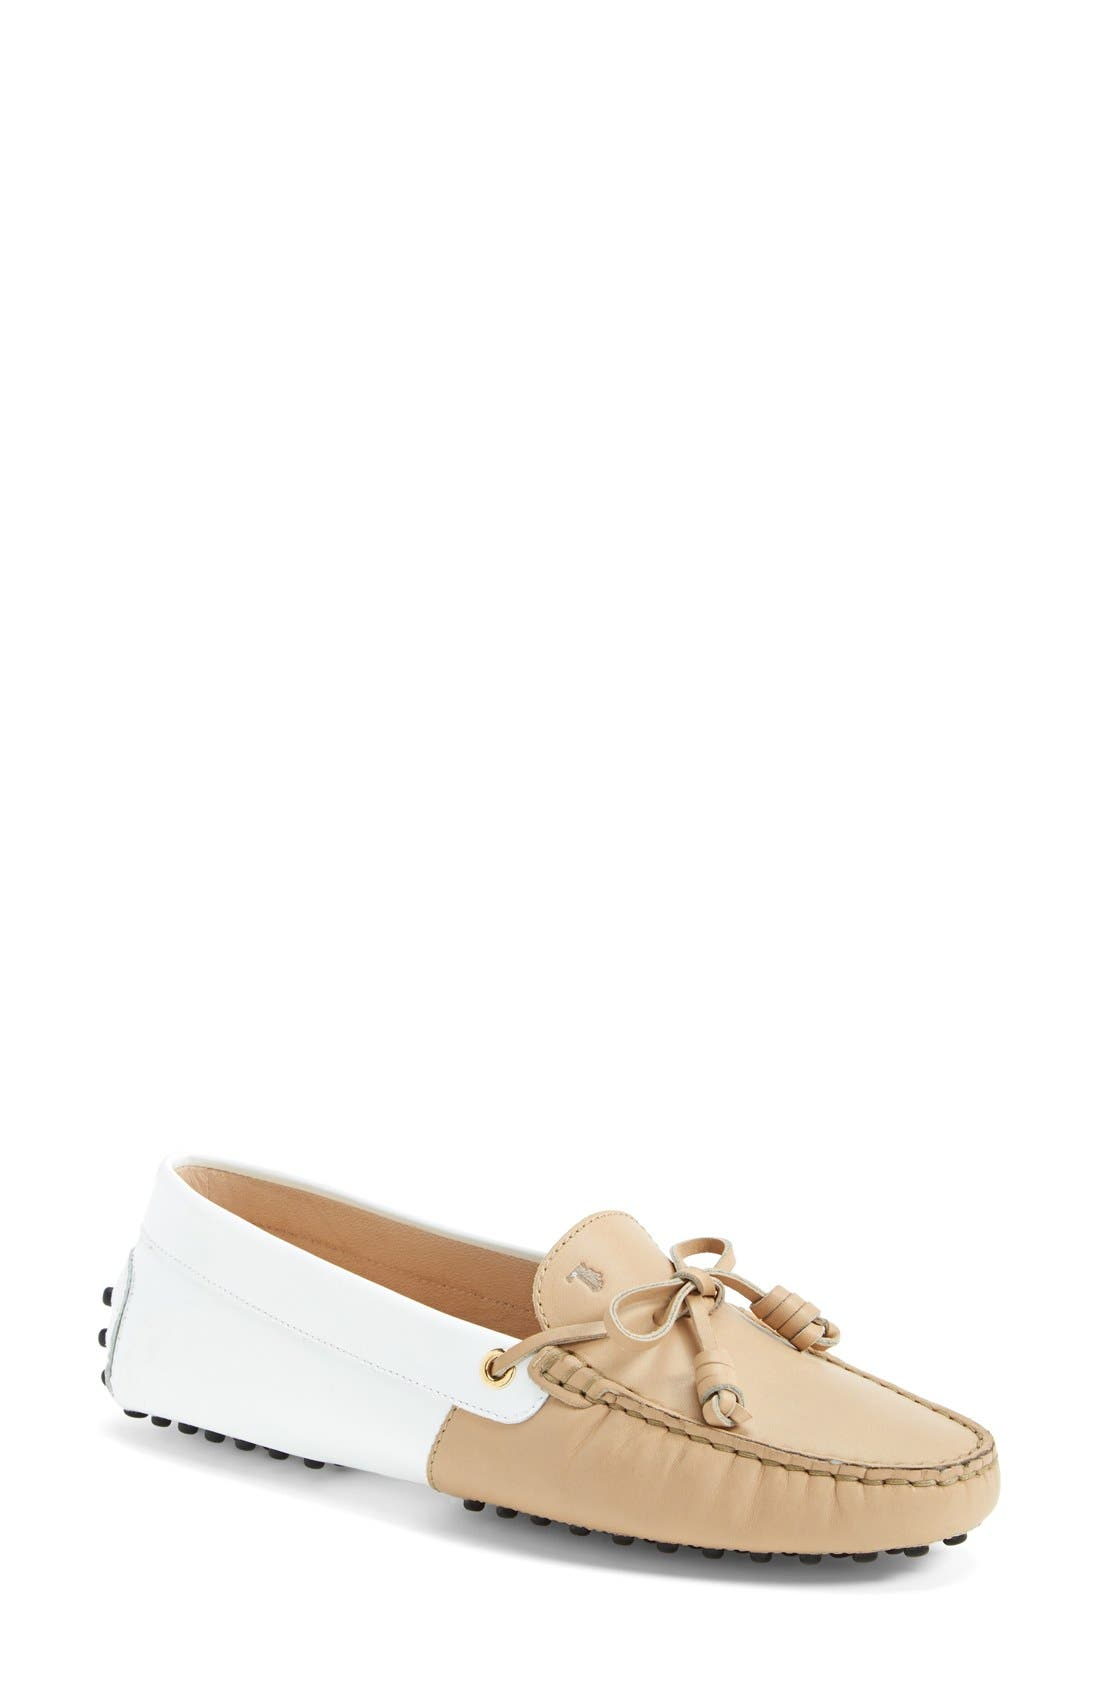 Alternate Image 1 Selected - Tod's 'Gommini - Curly' Leather Driving Moccasin (Women)